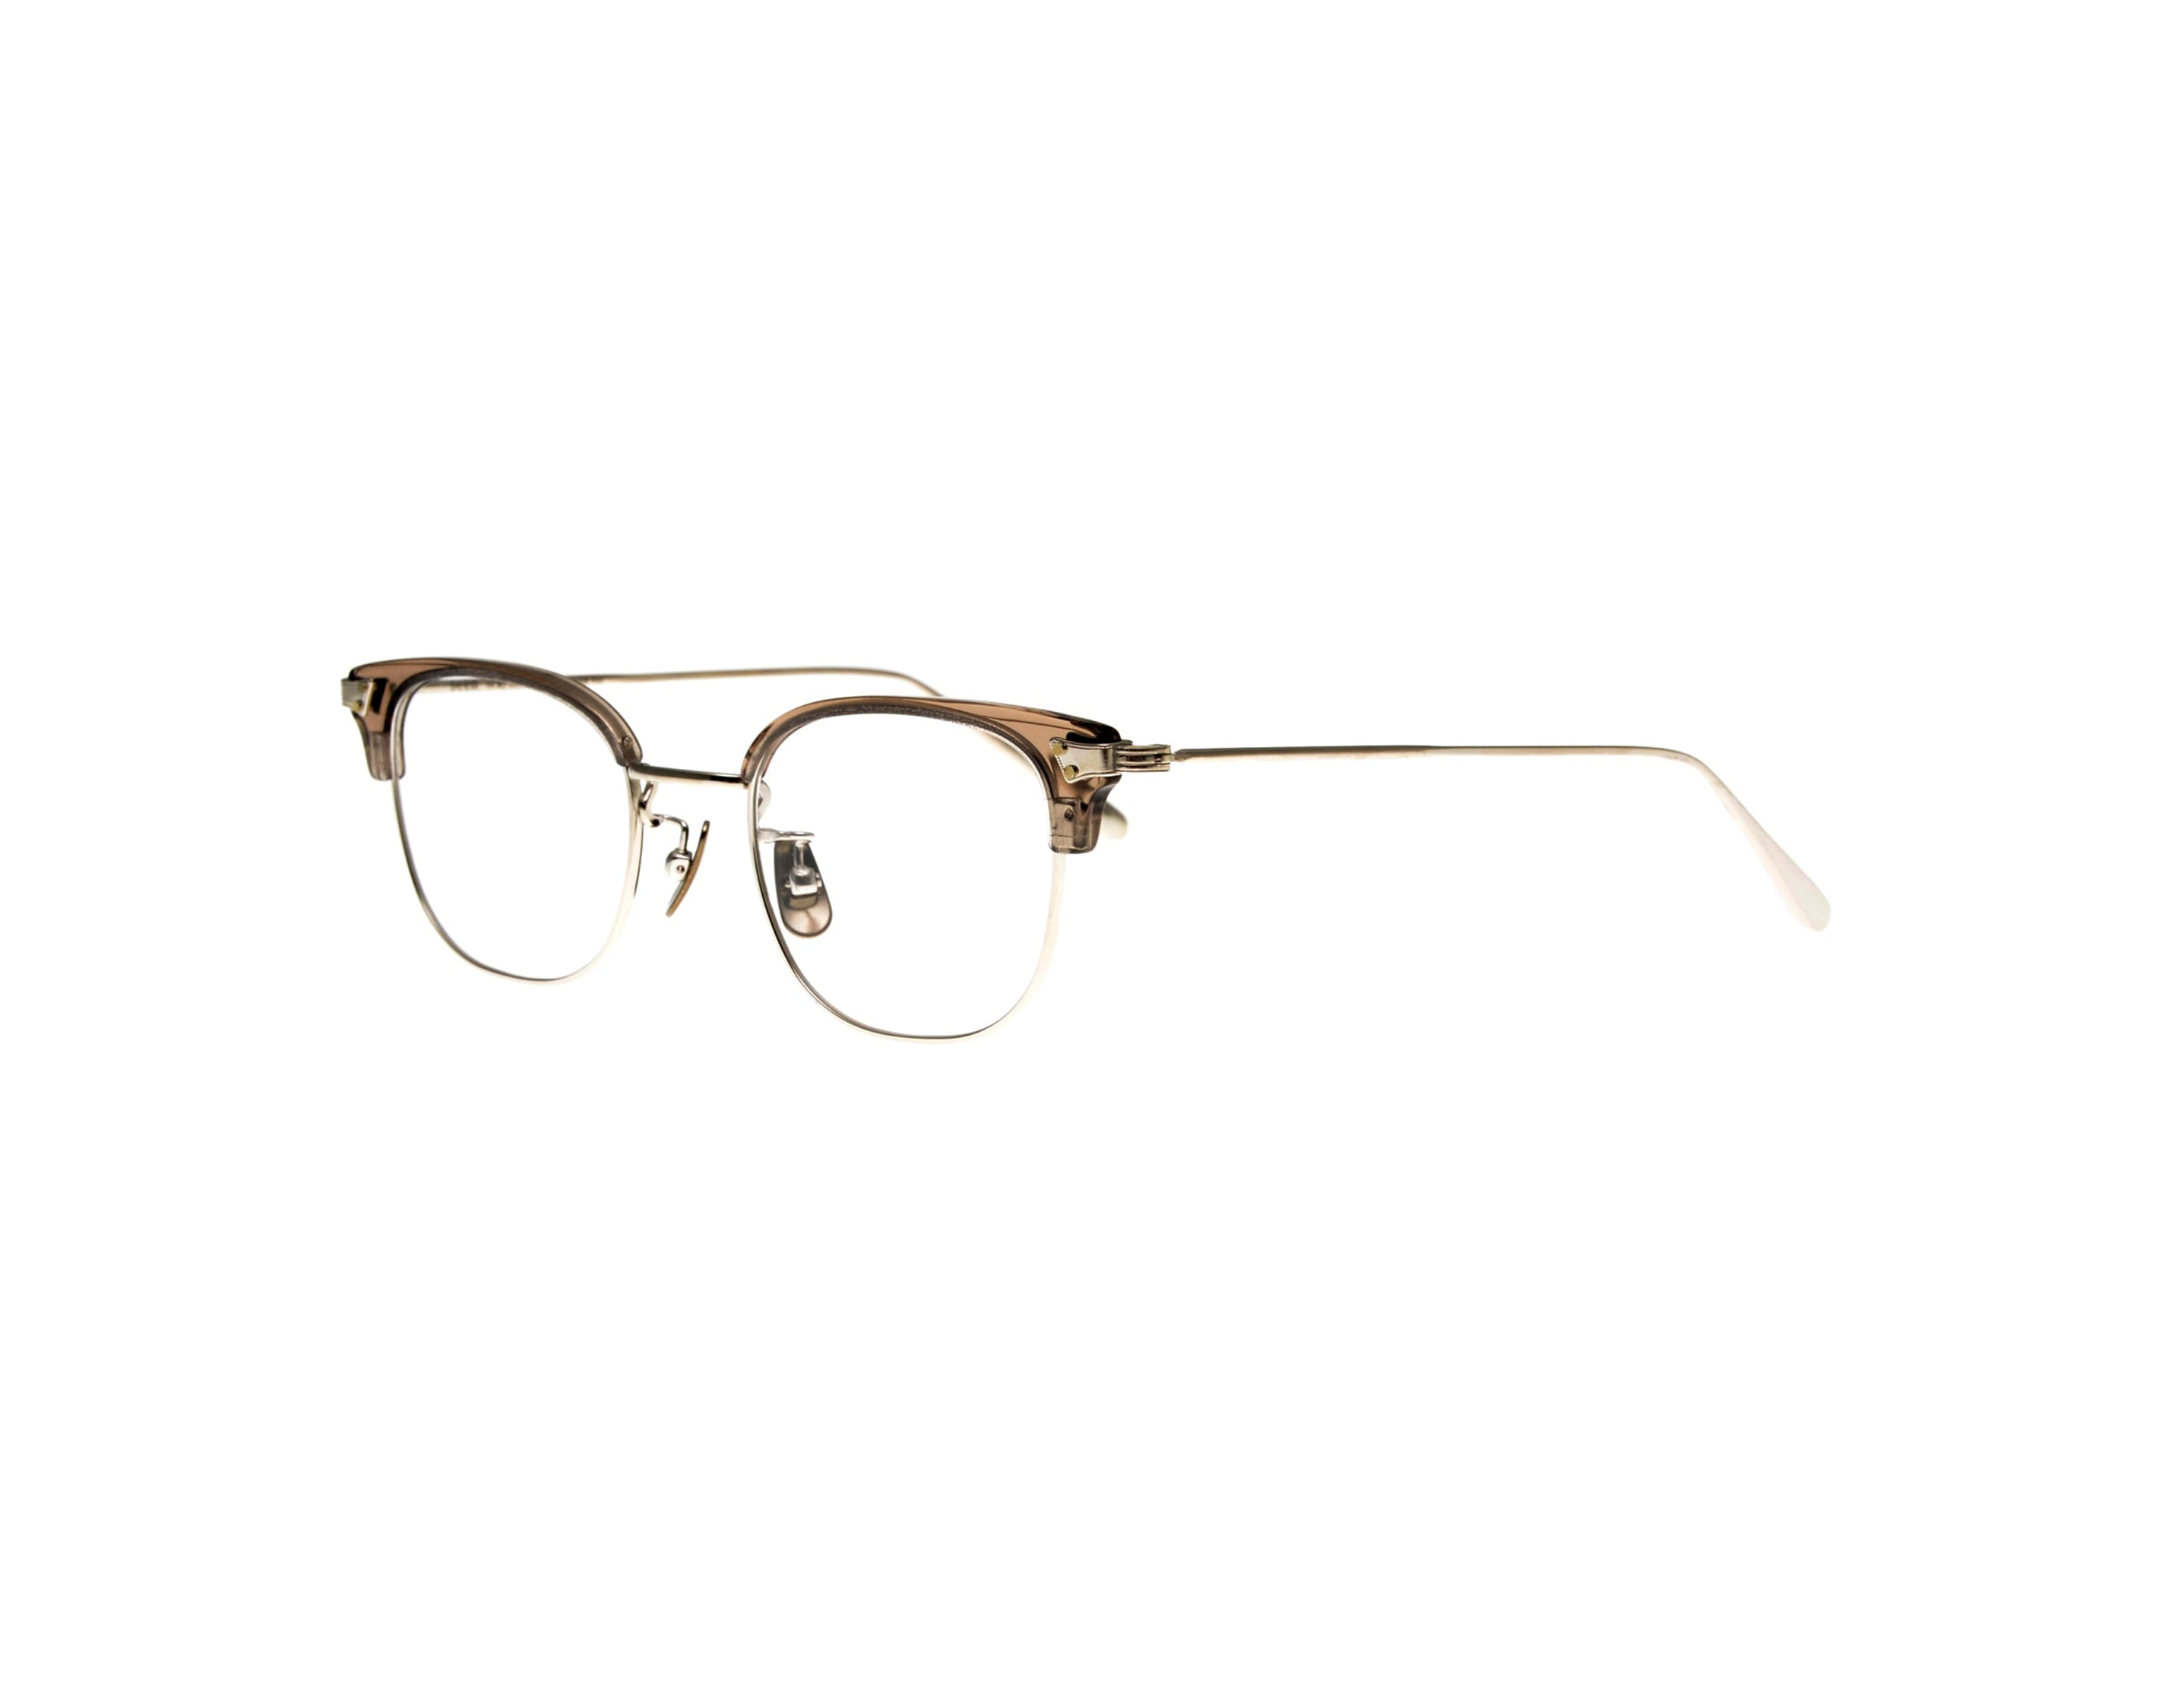 Oh My Glasses - Roy omg-109-GRY-48【Seem Collection】